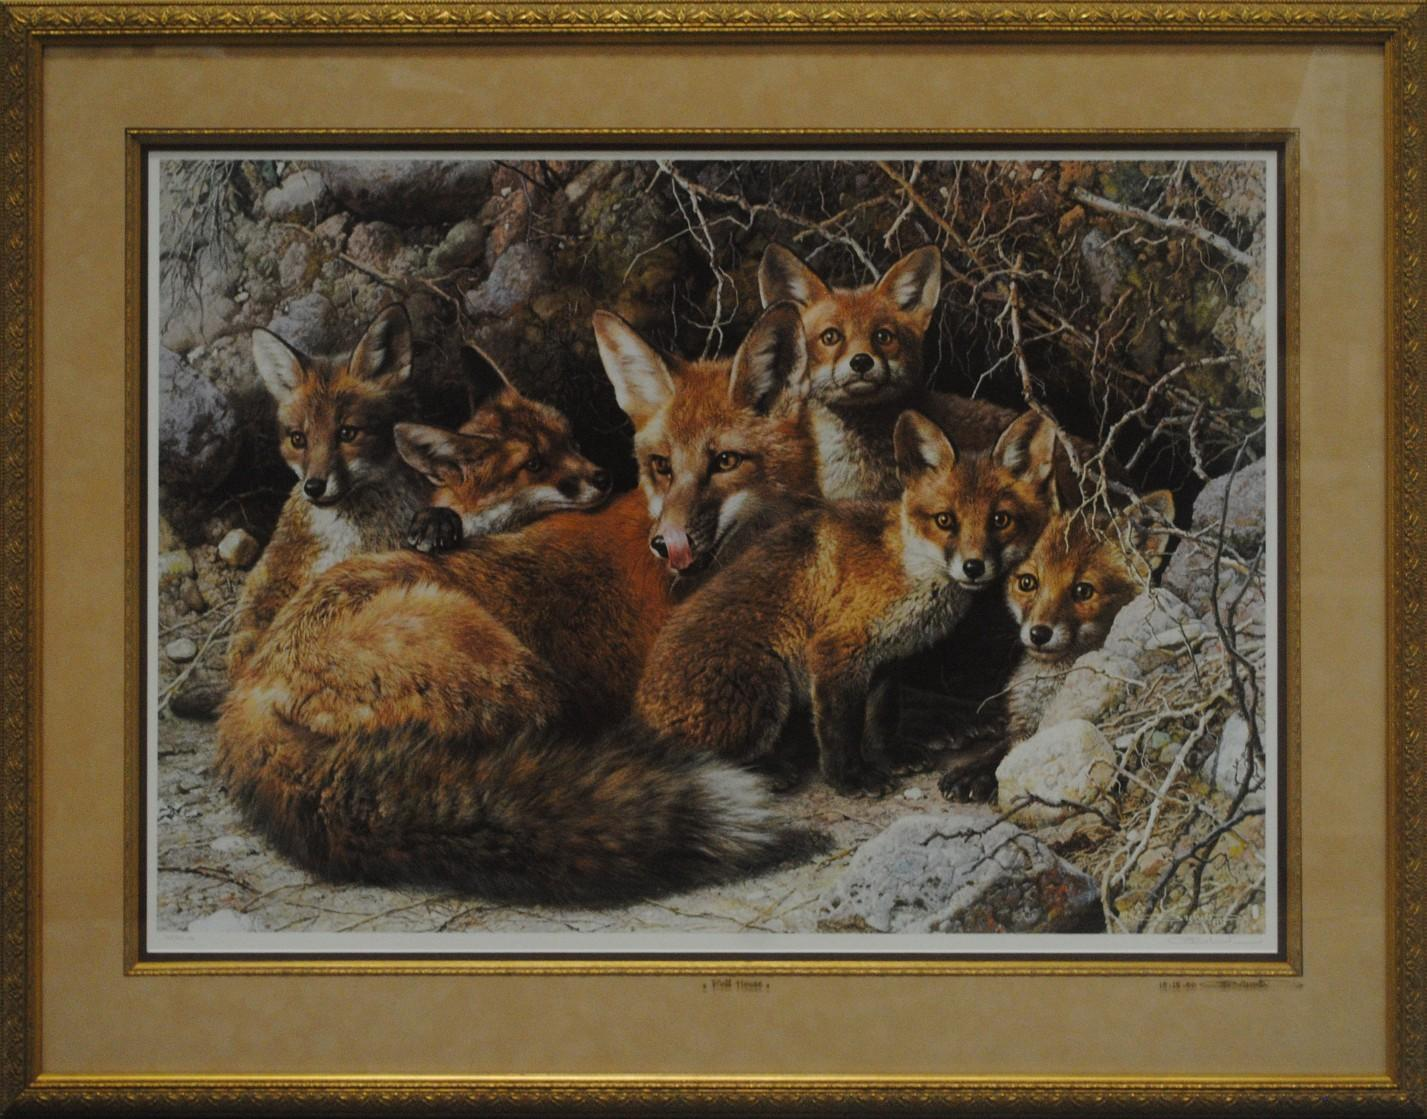 """Carl Brenders' """"Full House"""" Limited Edition Print"""